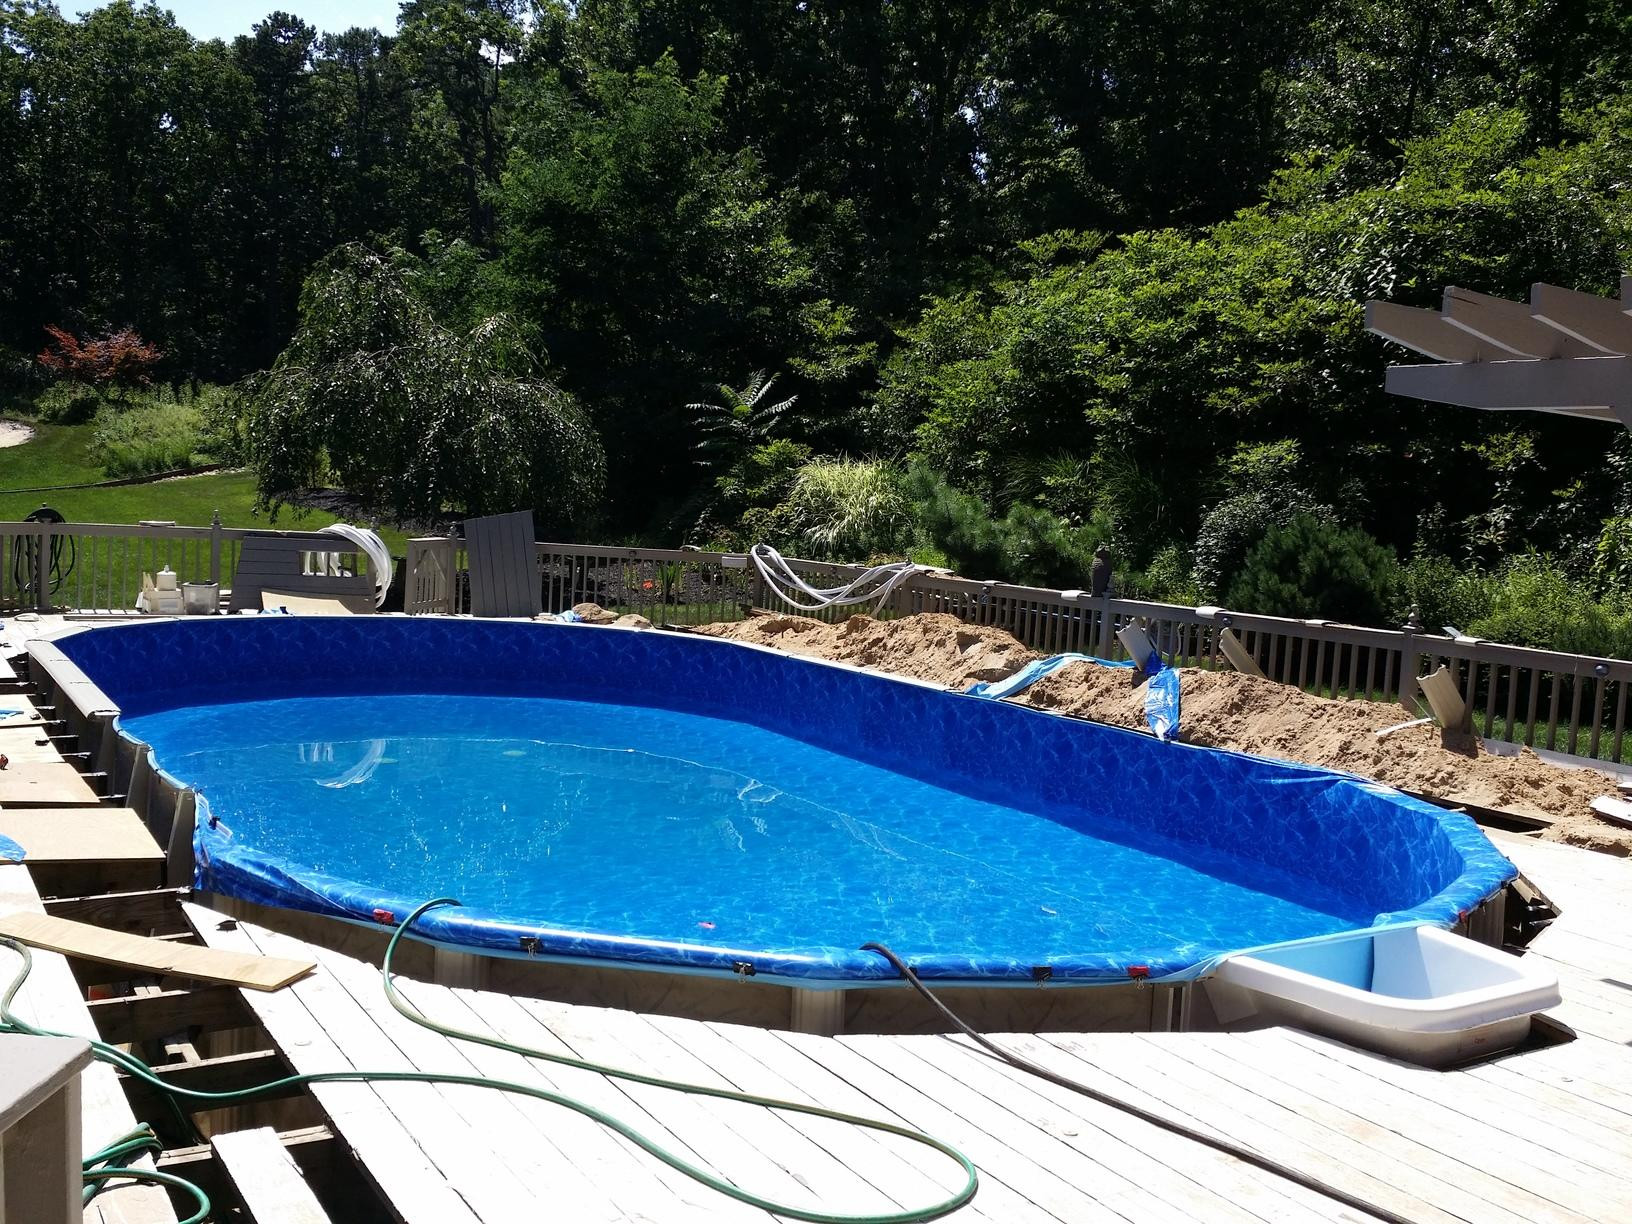 Best ideas about Deepest Above Ground Pool . Save or Pin Pool Services Ground Pool Installation with Deck Now.